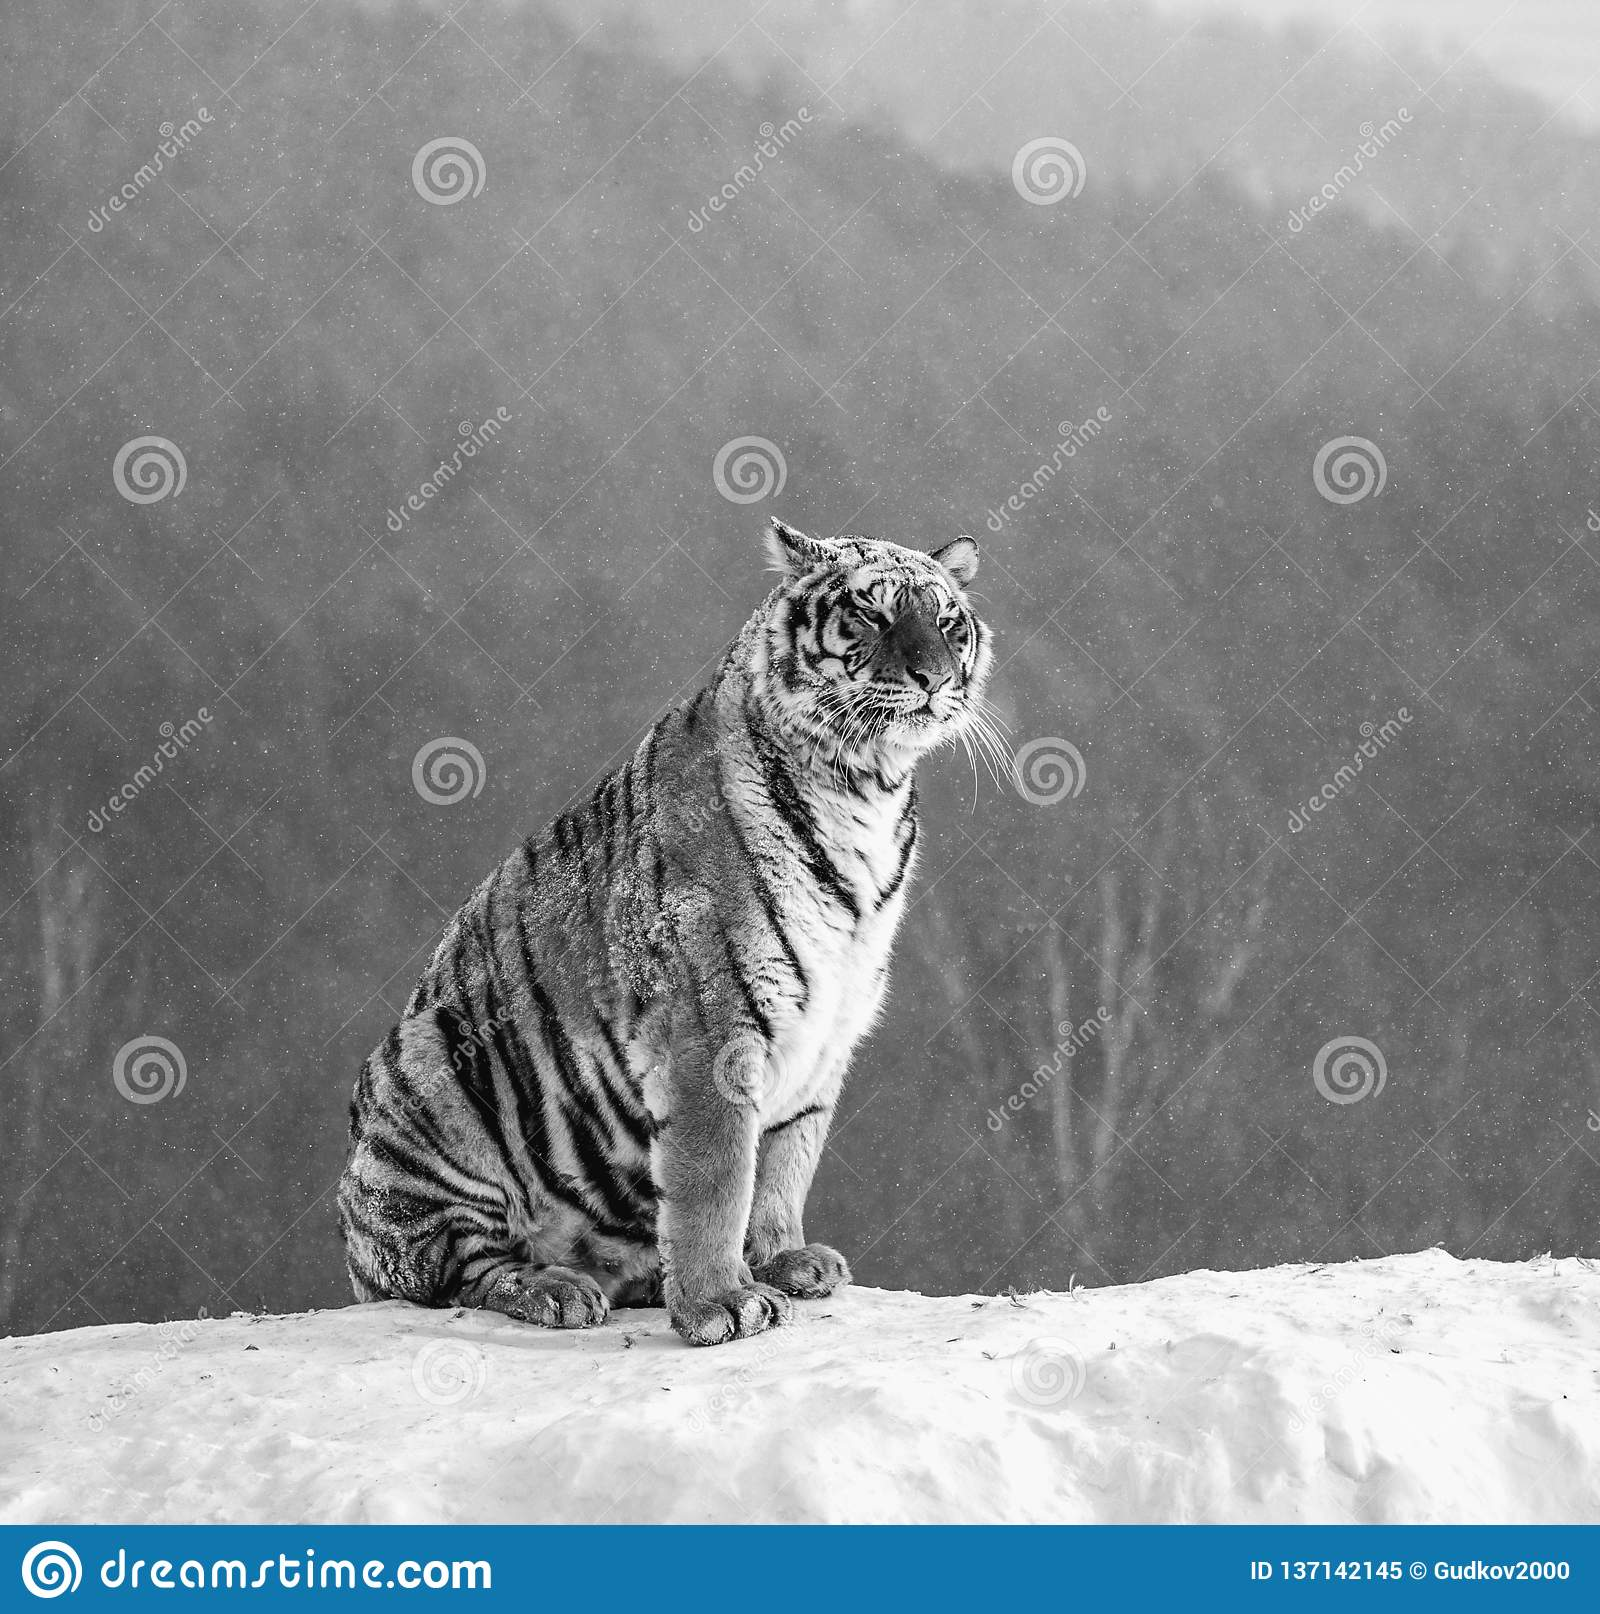 Siberian tiger is standing on a snowy hill on a background of winter trees. Black and white. China. Harbin.